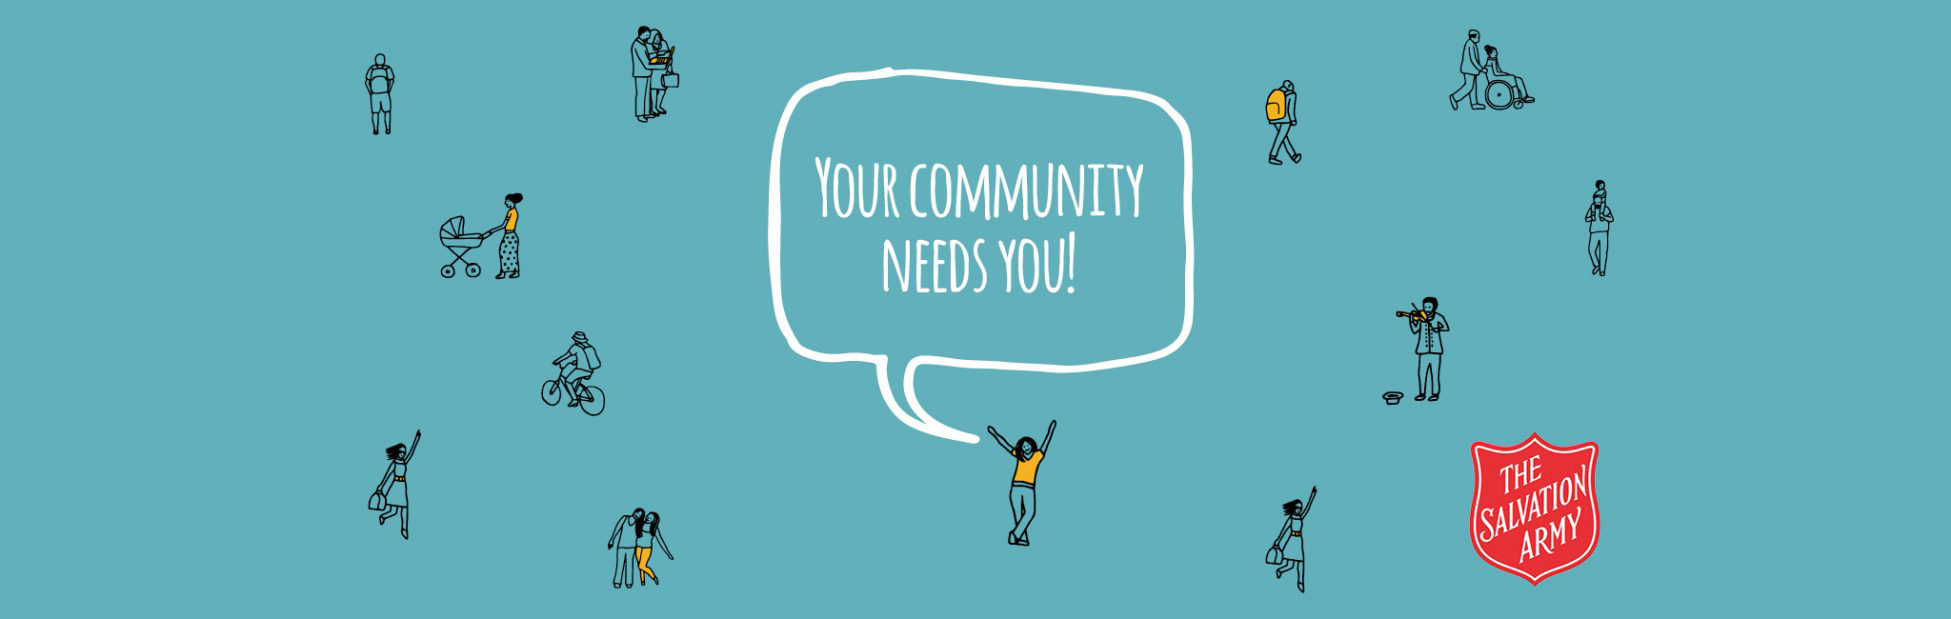 Salvation Army Header Image 'your community needs you' illustration